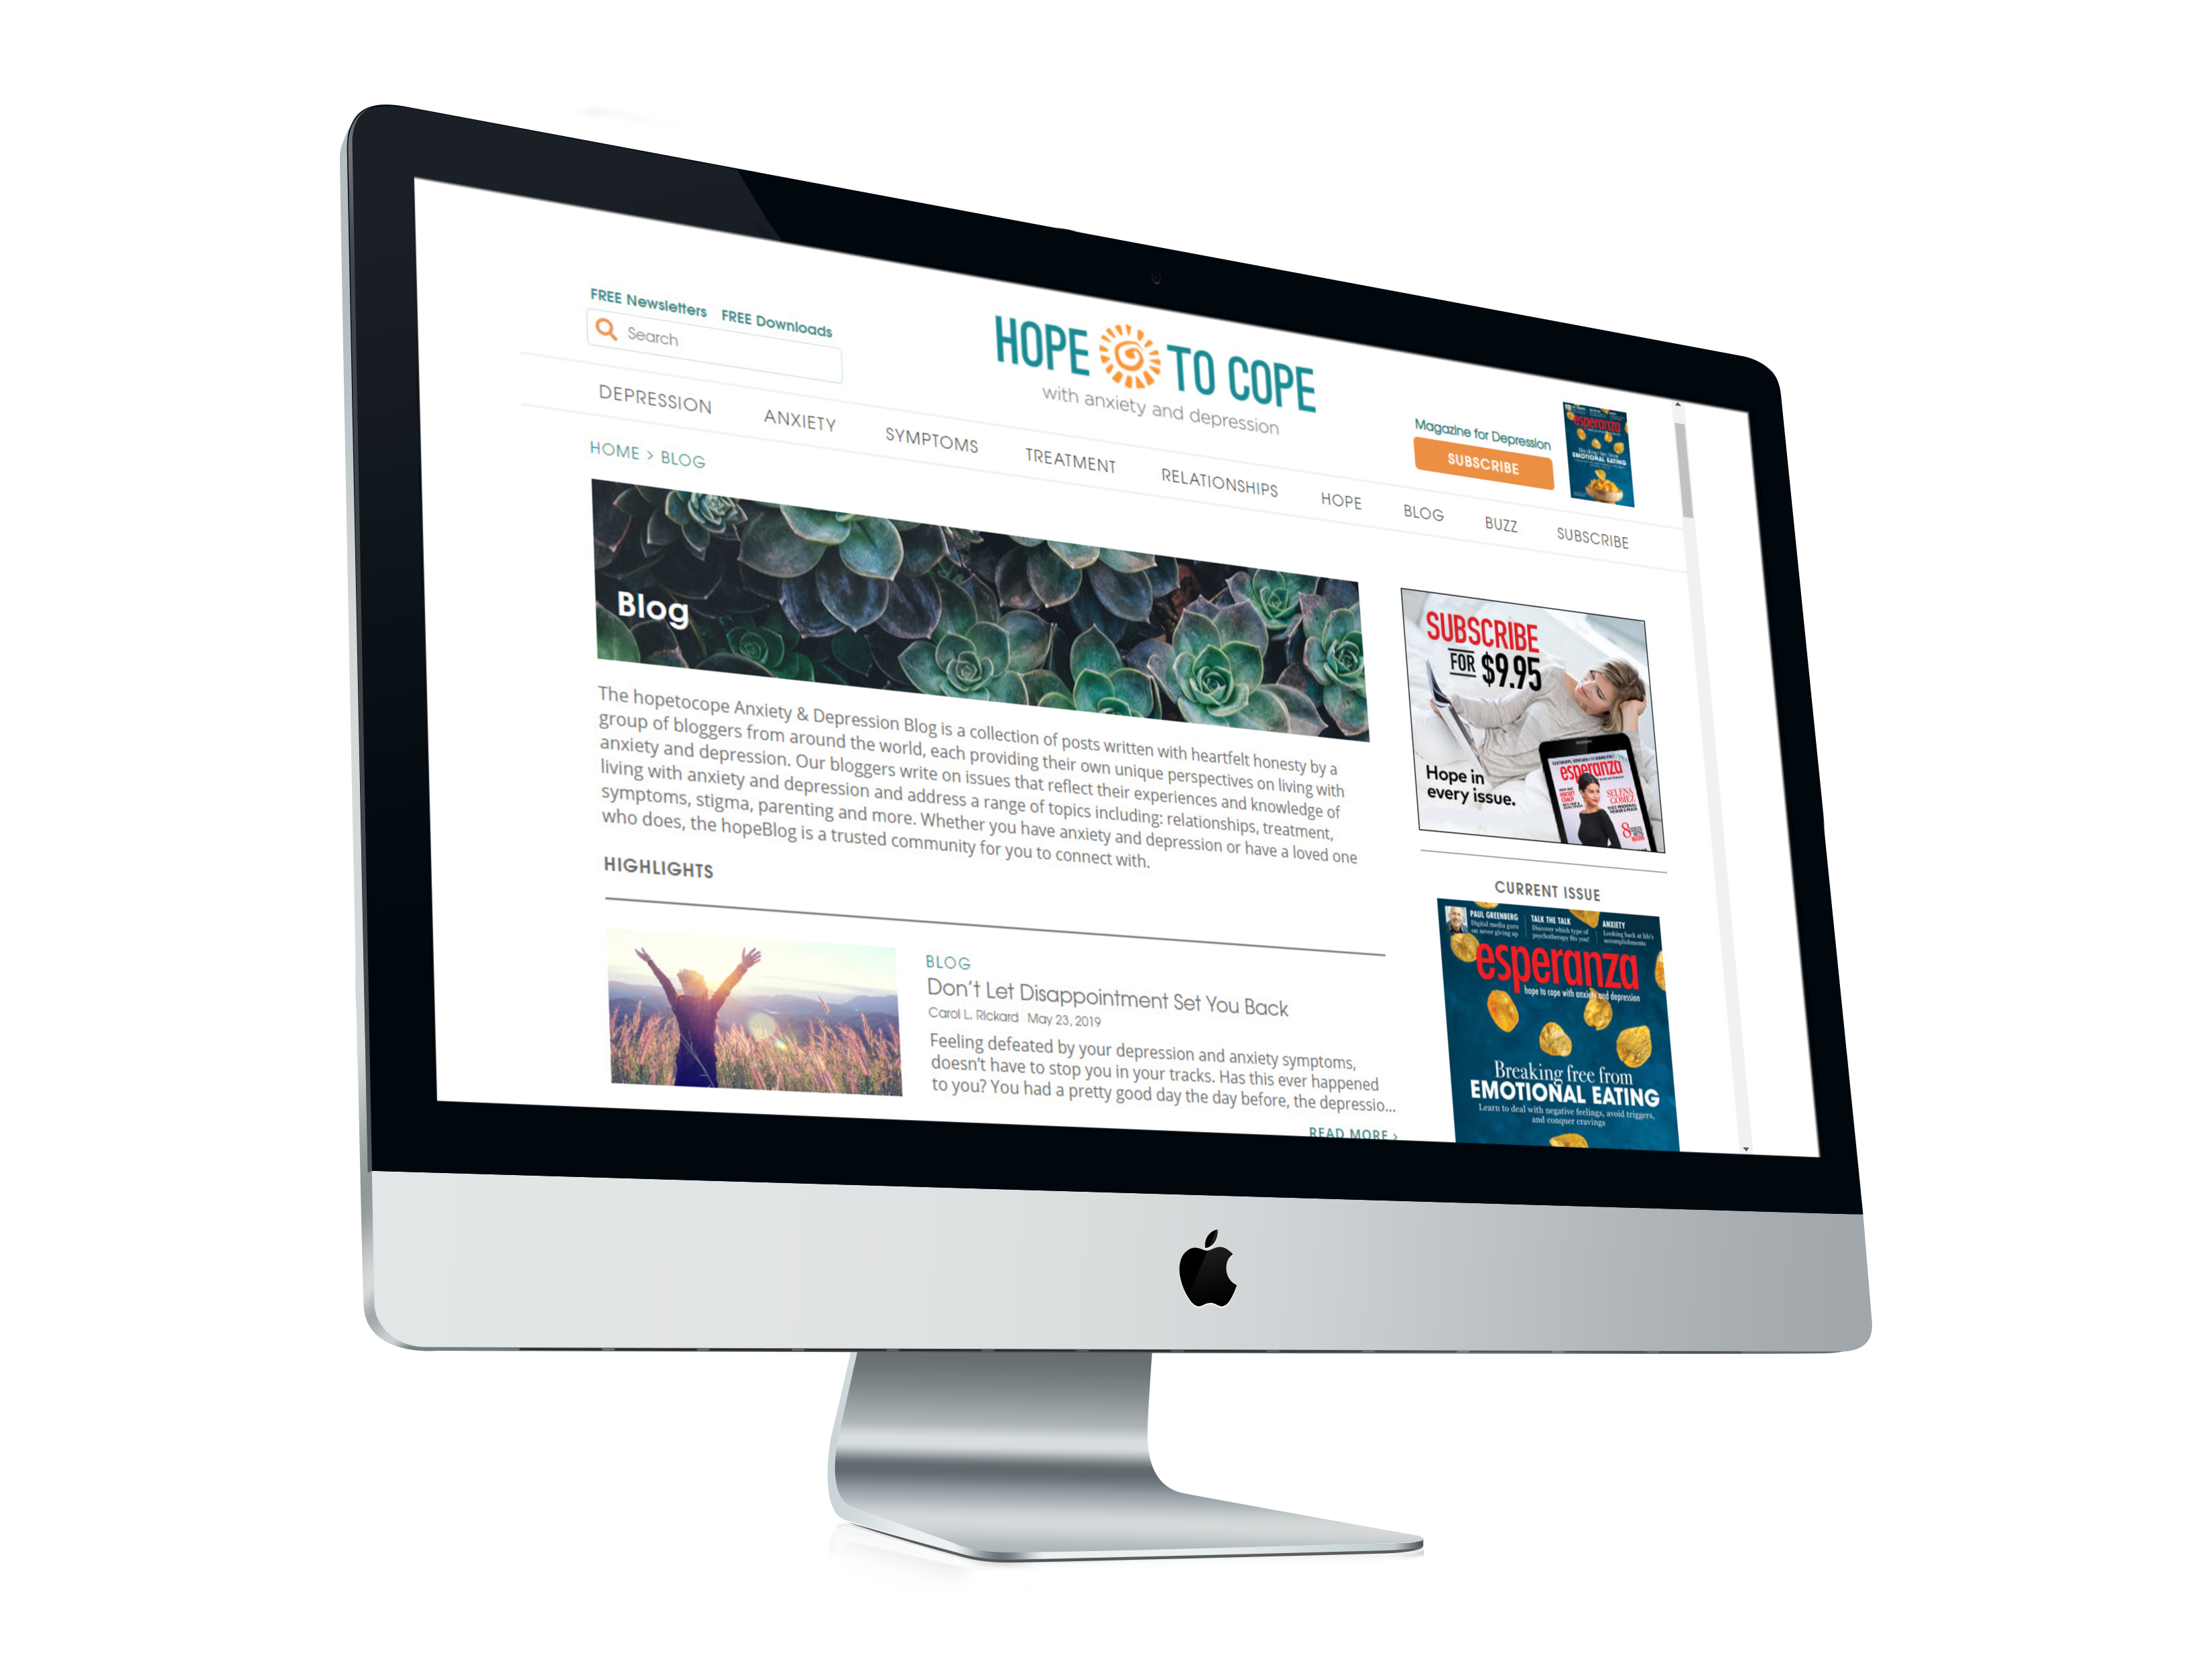 27-inch-imac-2012-perspective